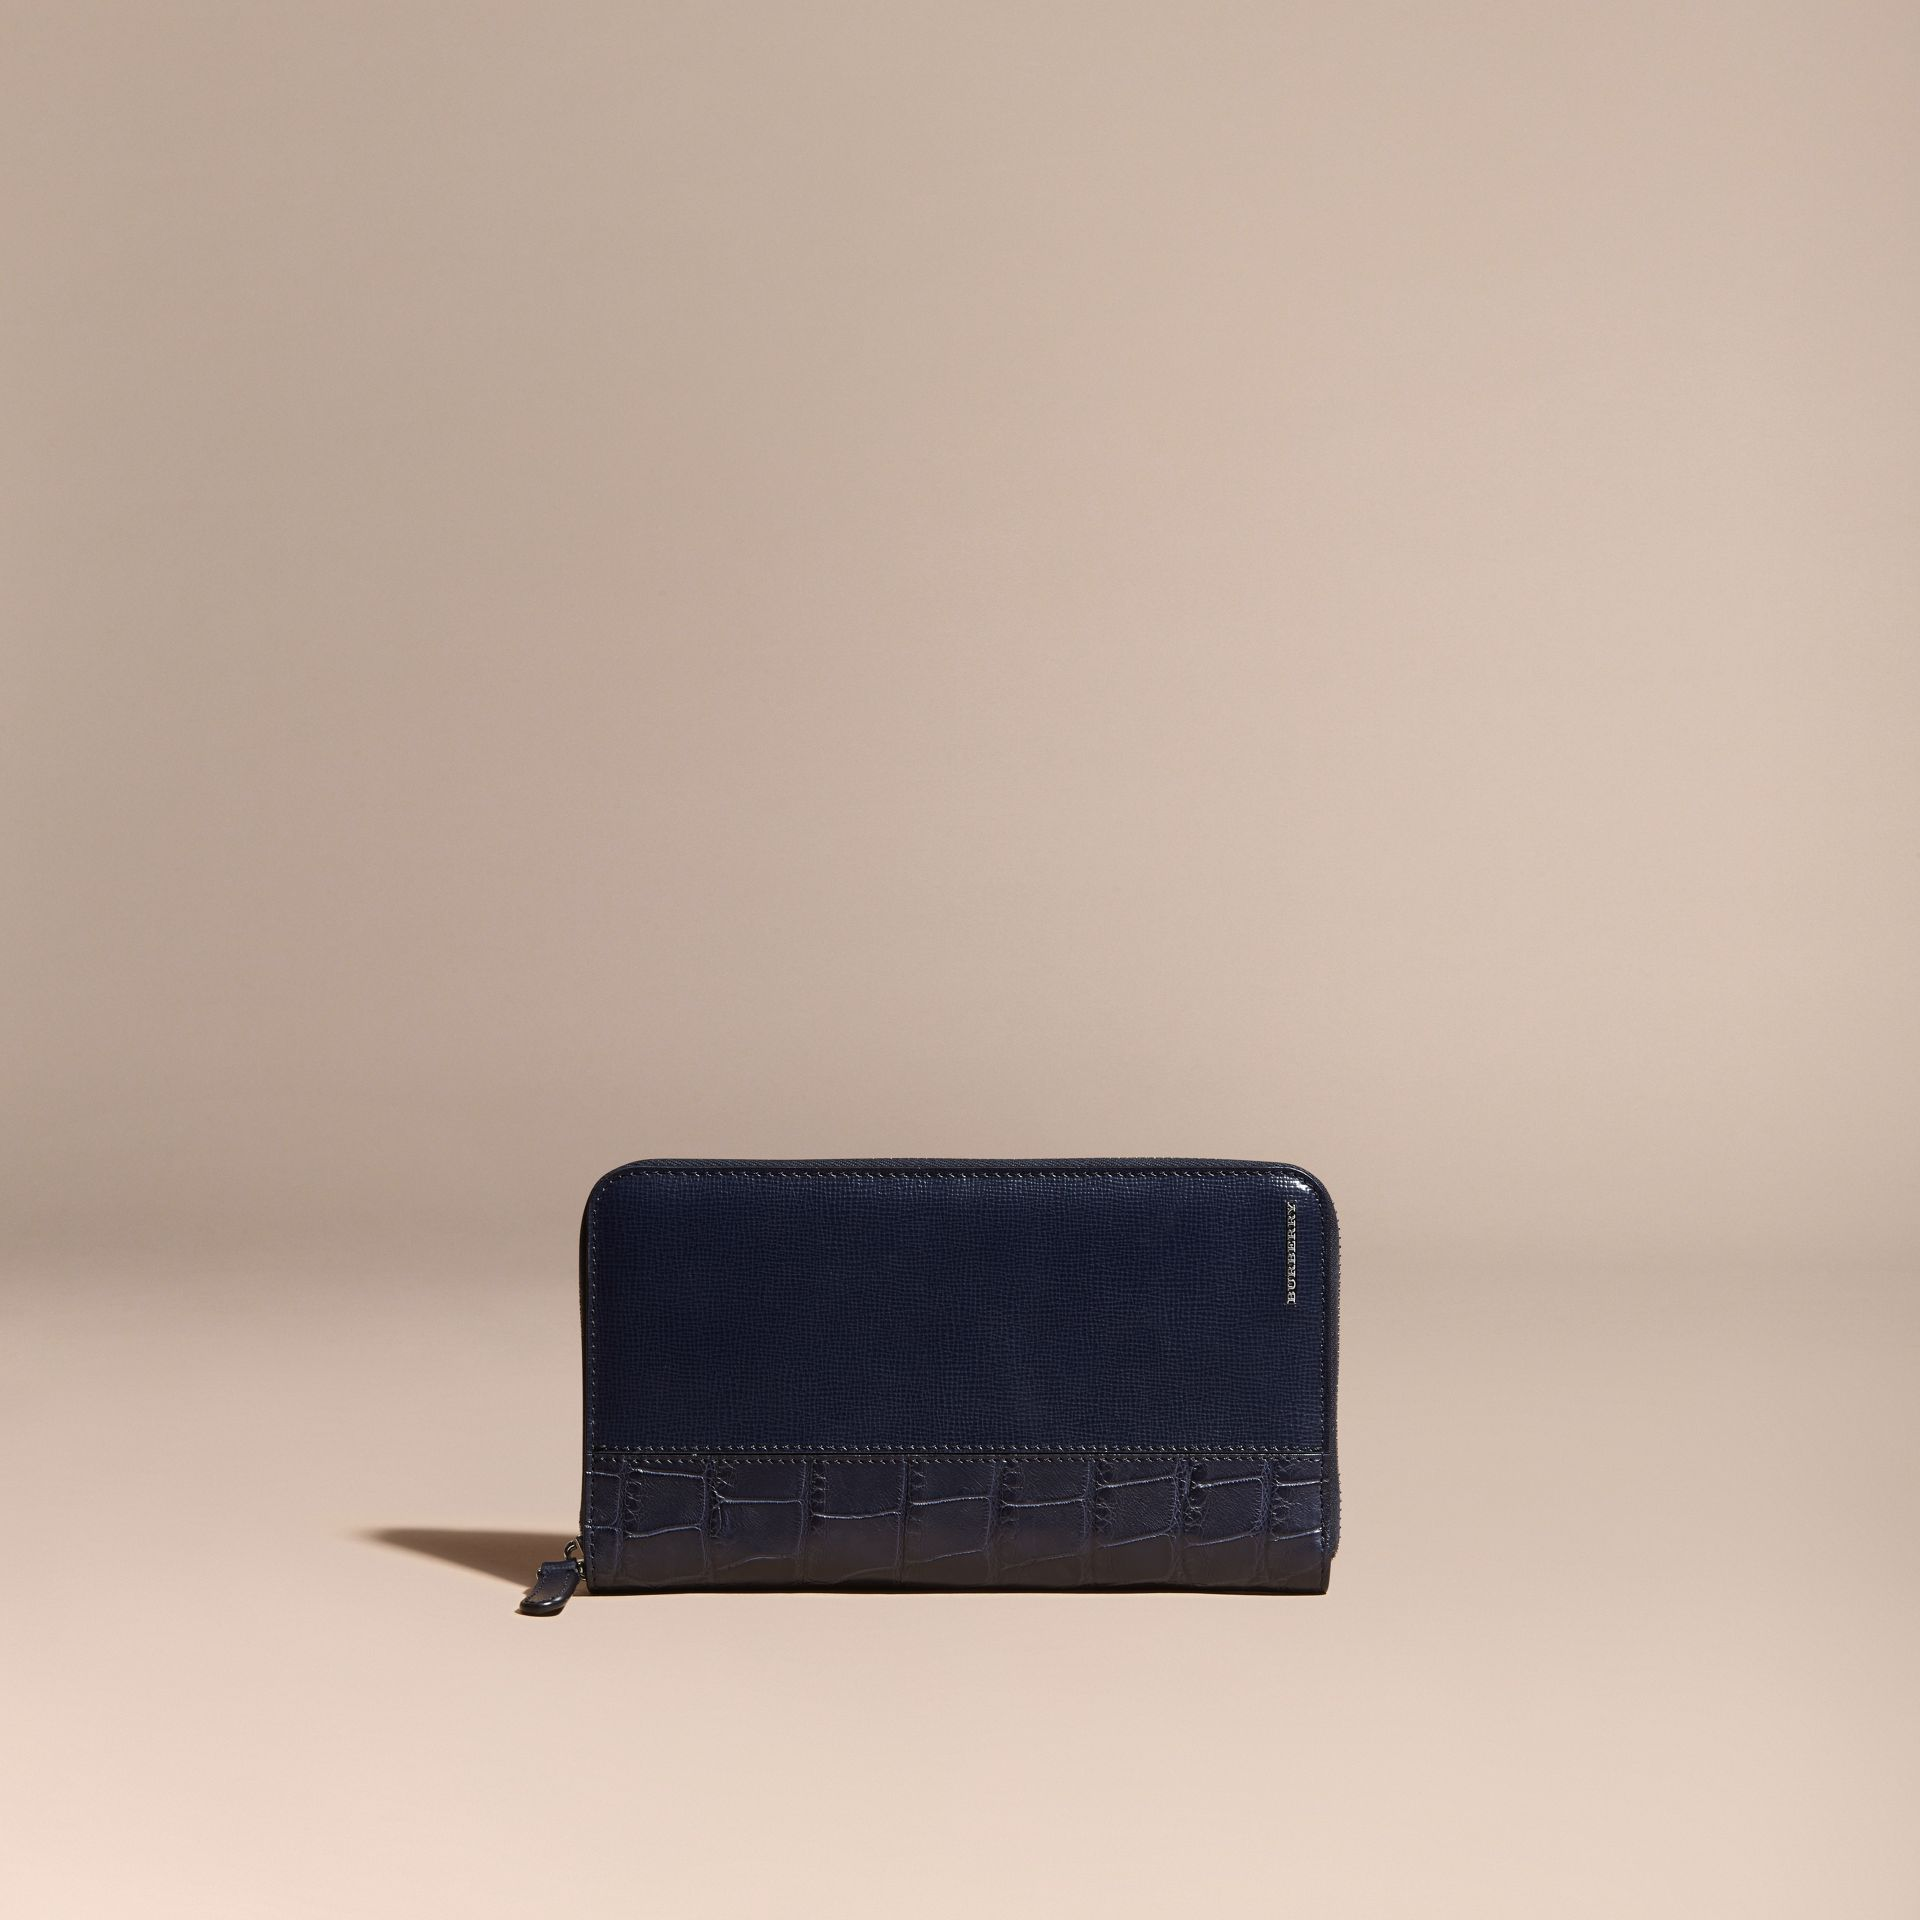 London Leather and Alligator Ziparound Wallet in Dark Navy - Men | Burberry Australia - gallery image 5